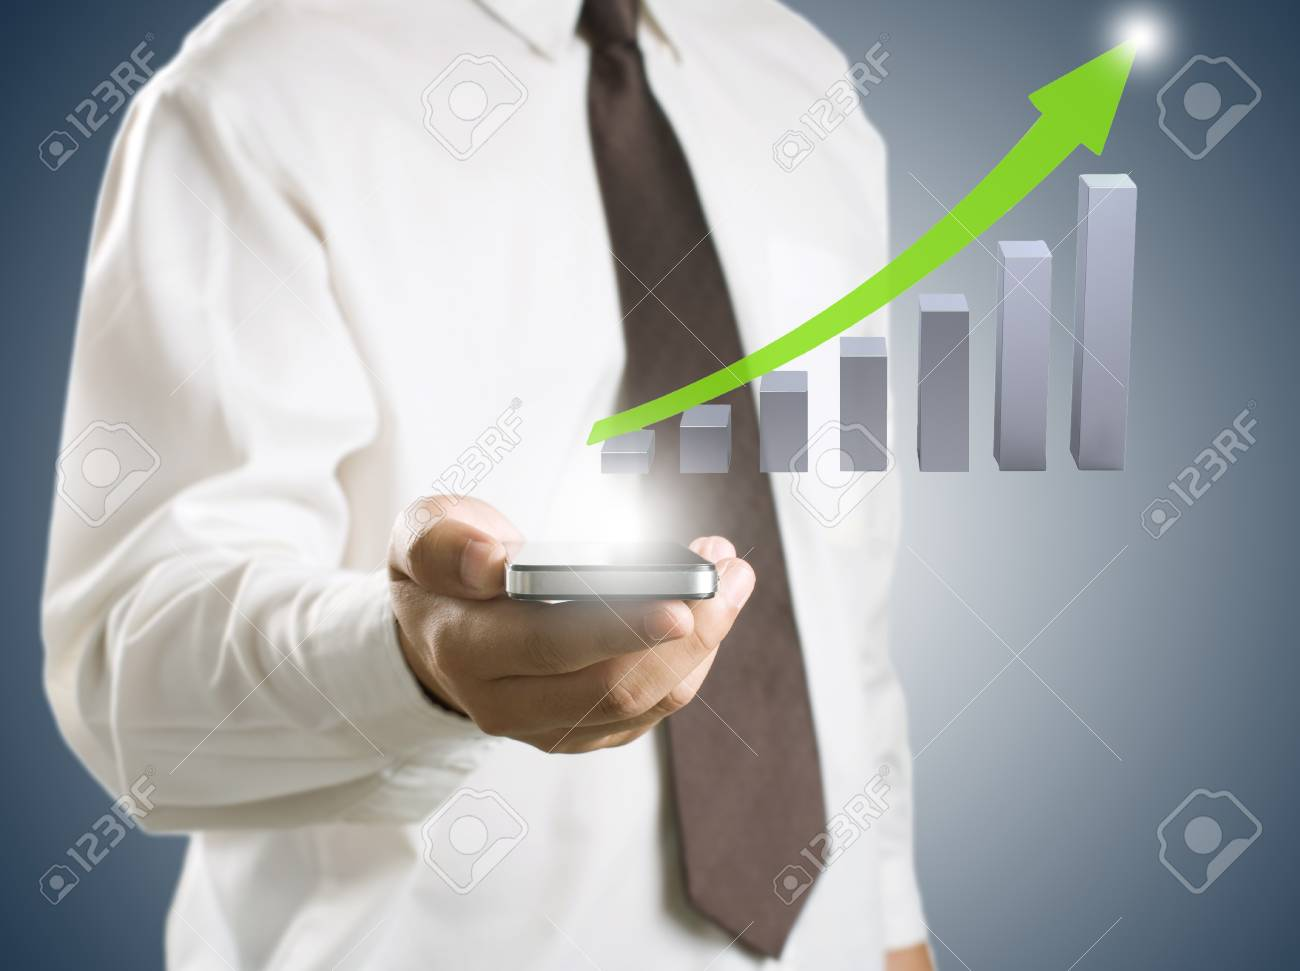 Business man showing smart phone with growth graph in background Stock Photo - 13841060